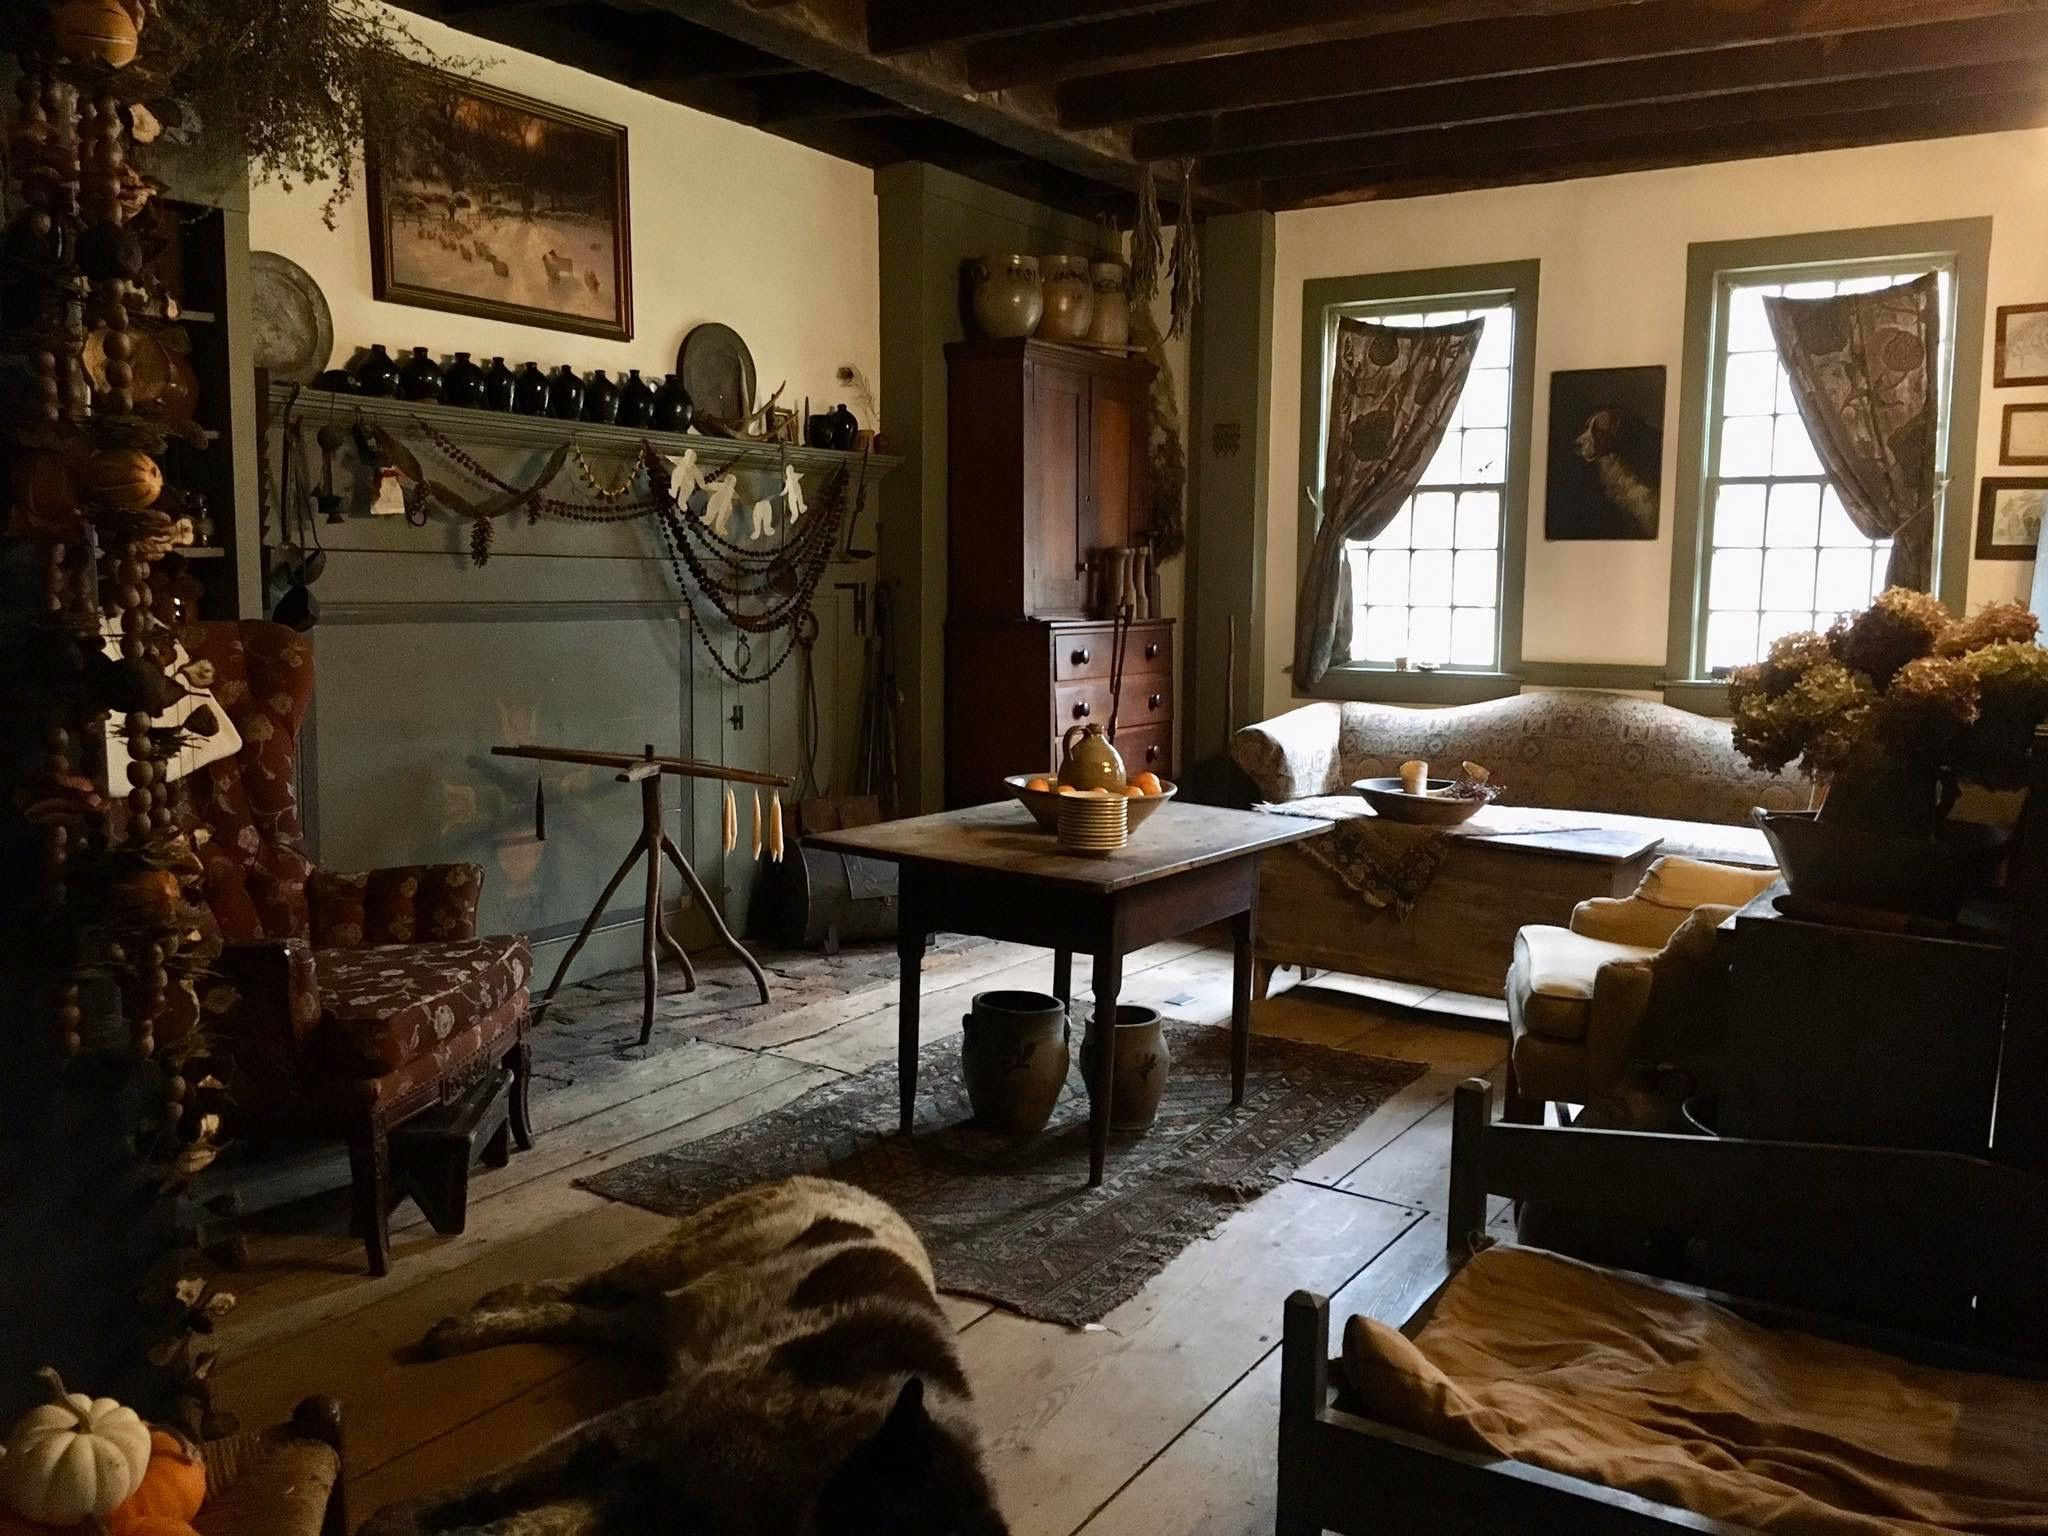 Pin By Sherie Smith On Walker Homestead In 2020 Primitive Living Room Home Primitive Decorating #primitive #paint #colors #for #living #room